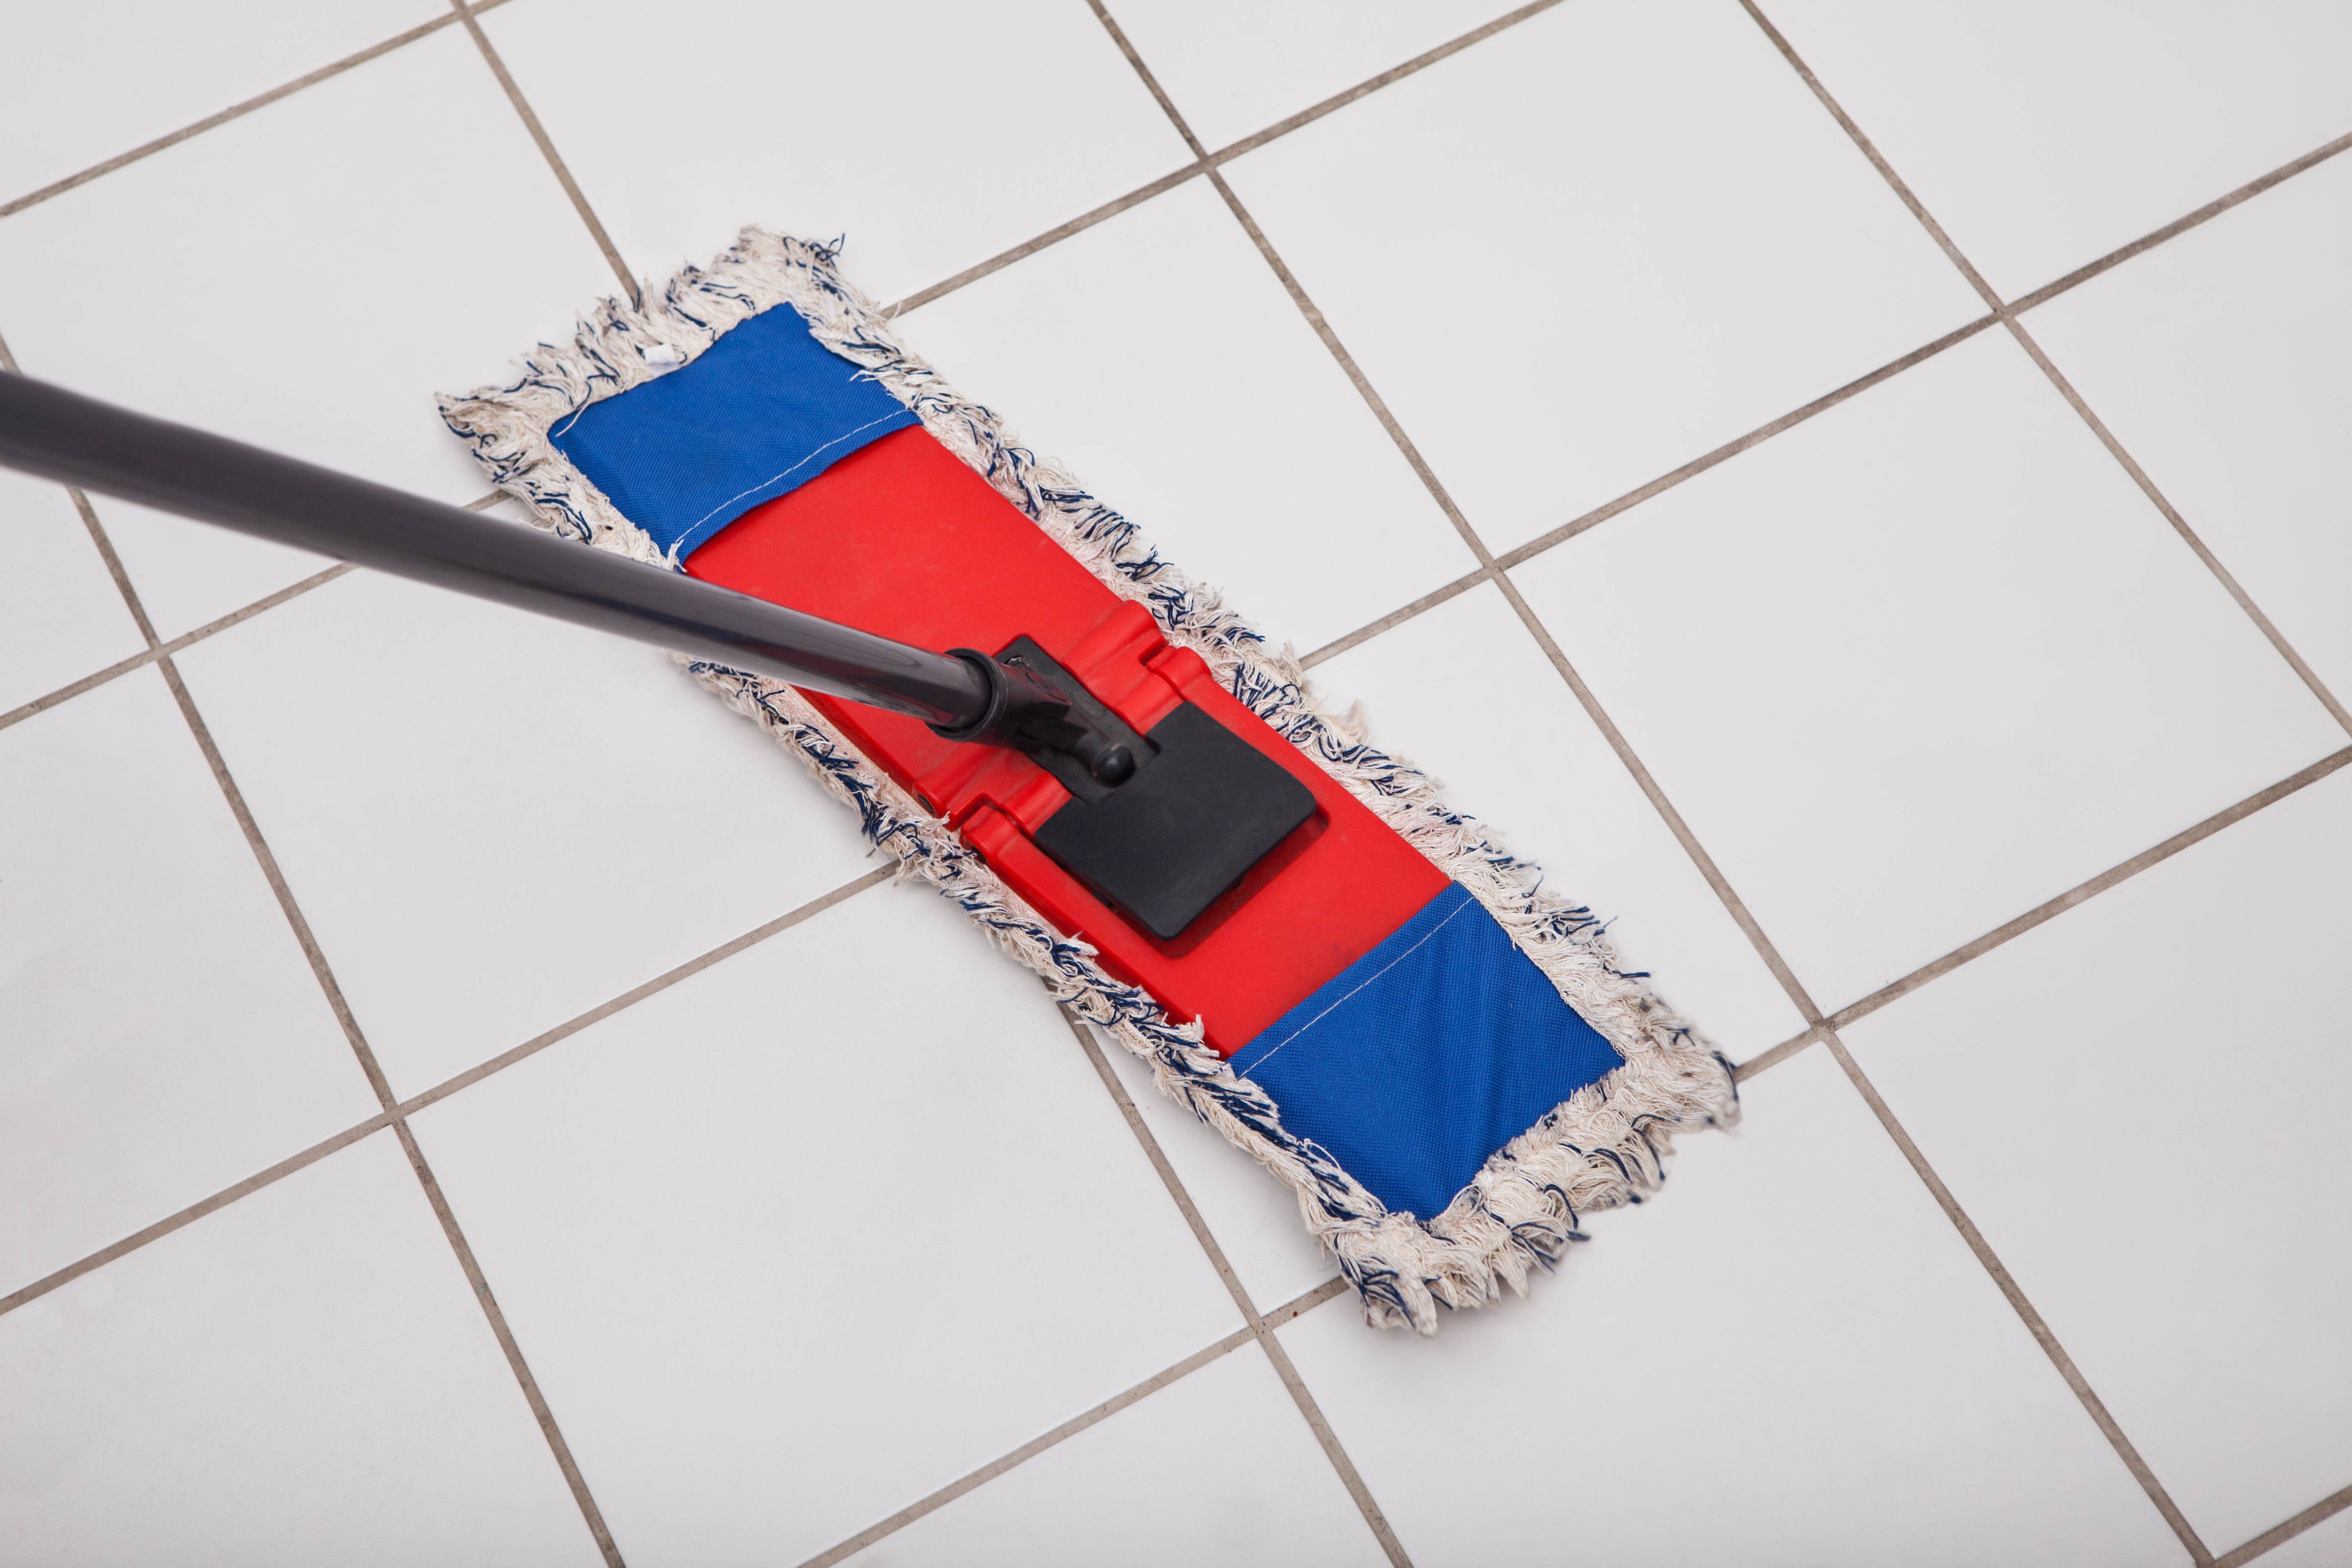 How To Remove Common Stains From Porcelain Tile - Best bathroom cleaner for hard water